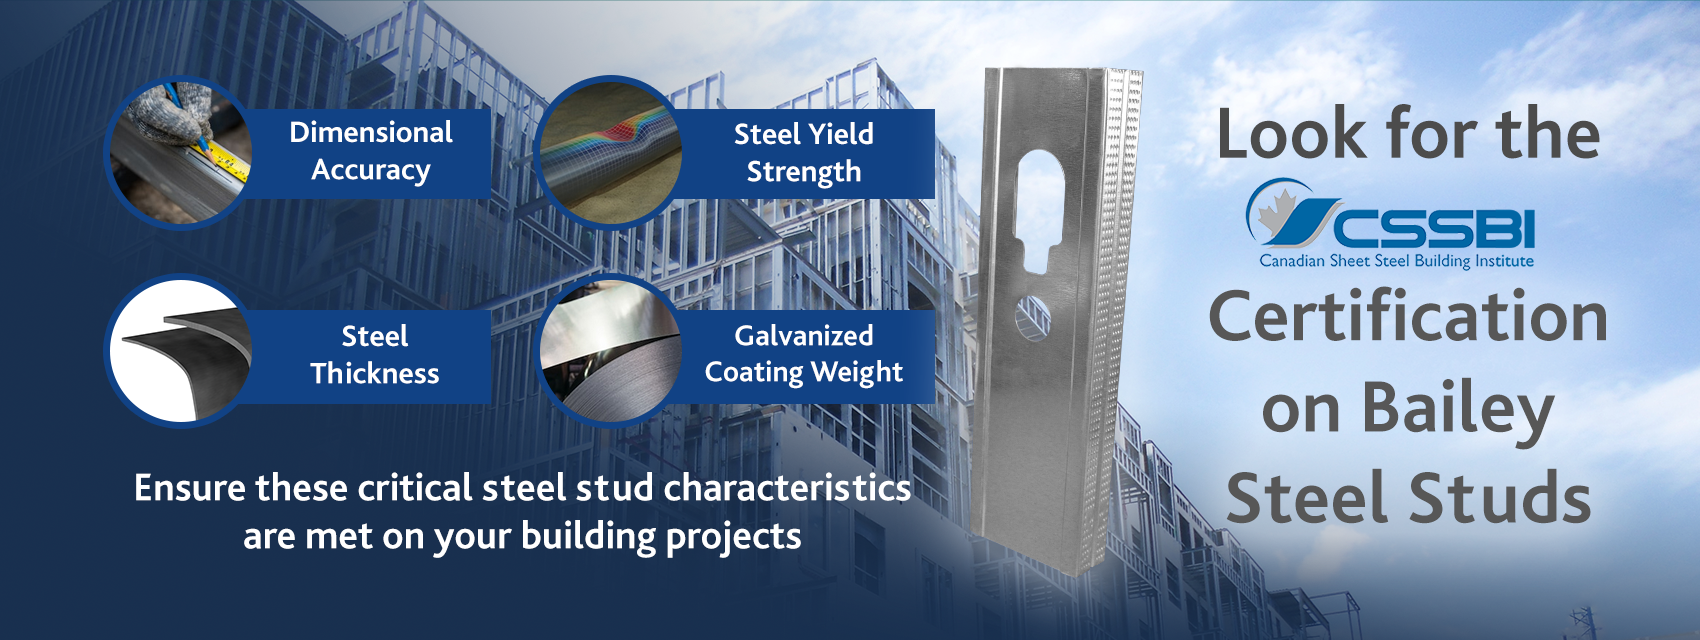 Look for Bailey Steel Stud Certification 2020